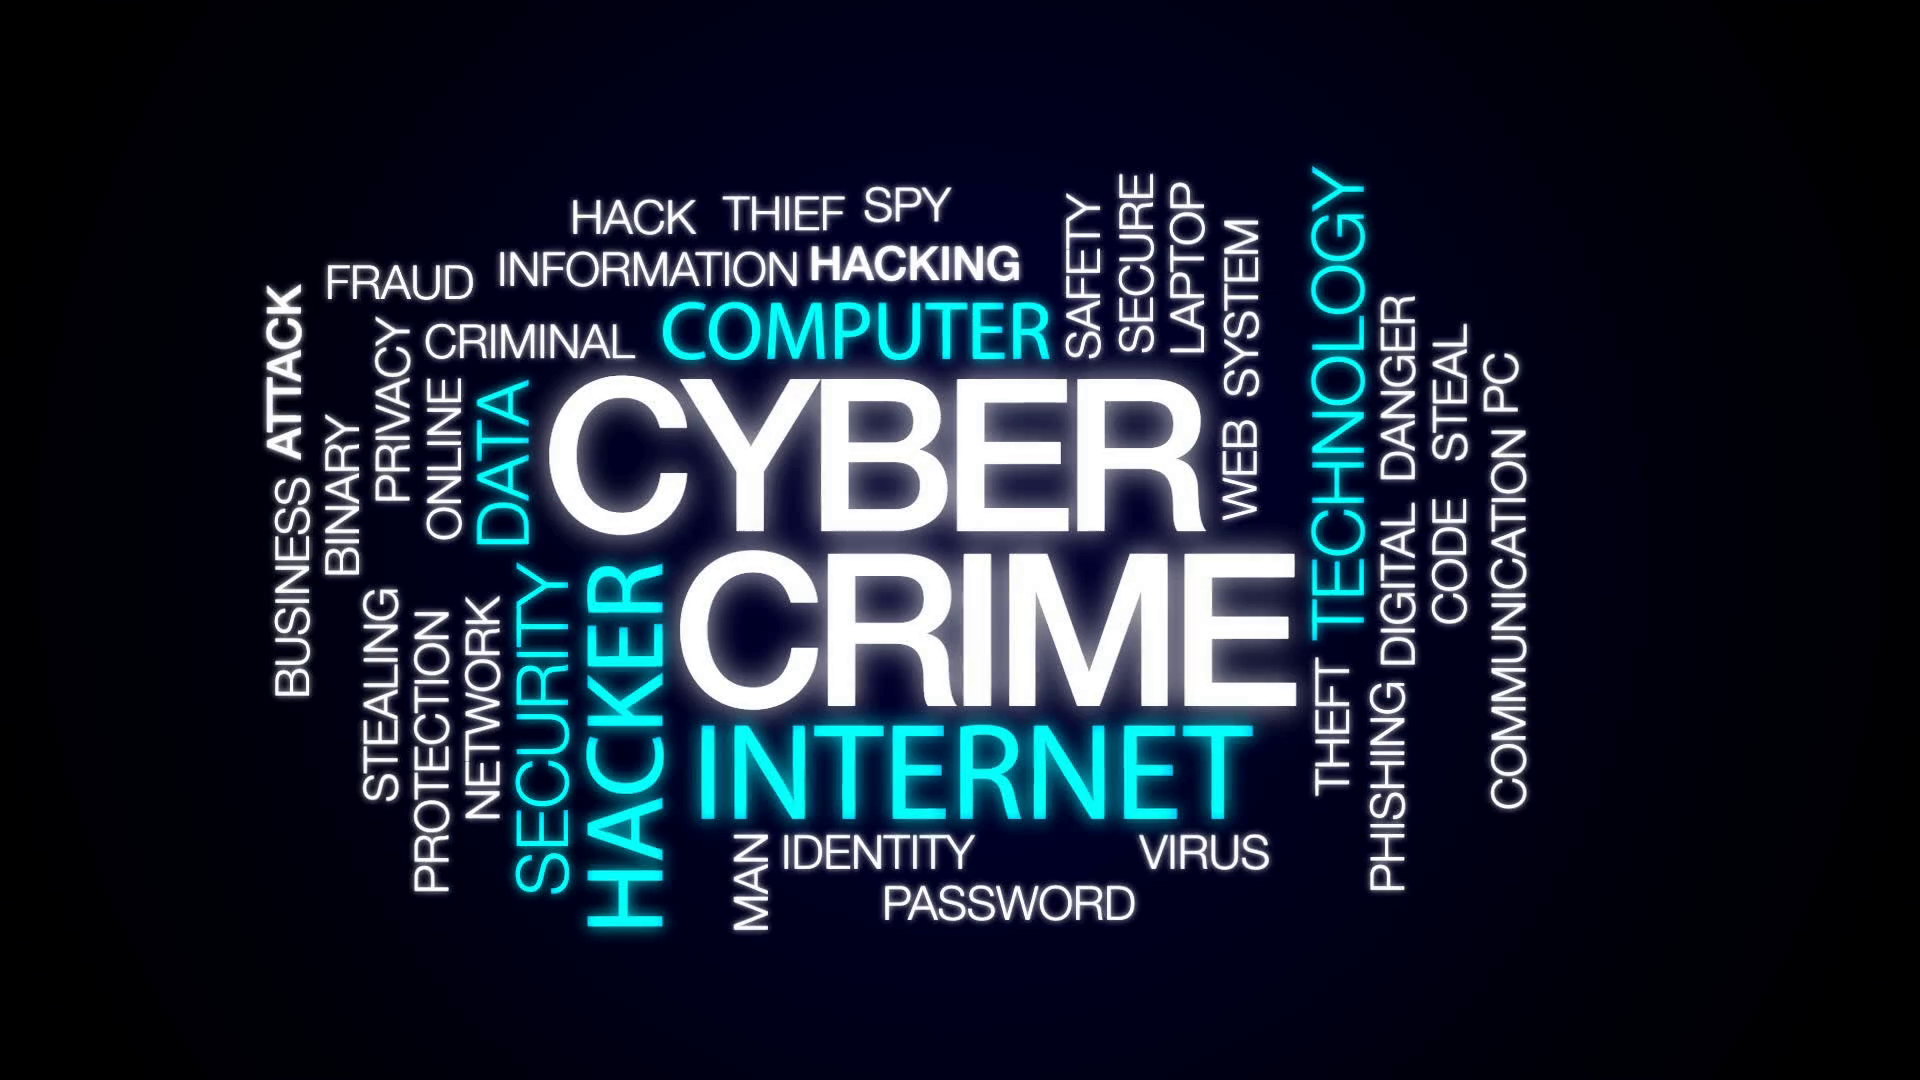 computer hacking and cyber crime law Crime, cyber-crime, cybercrime, internet crime, hacking, webcrime, web-crime, crime online, online crime, law, offence, police, investigation, jurisdiction.